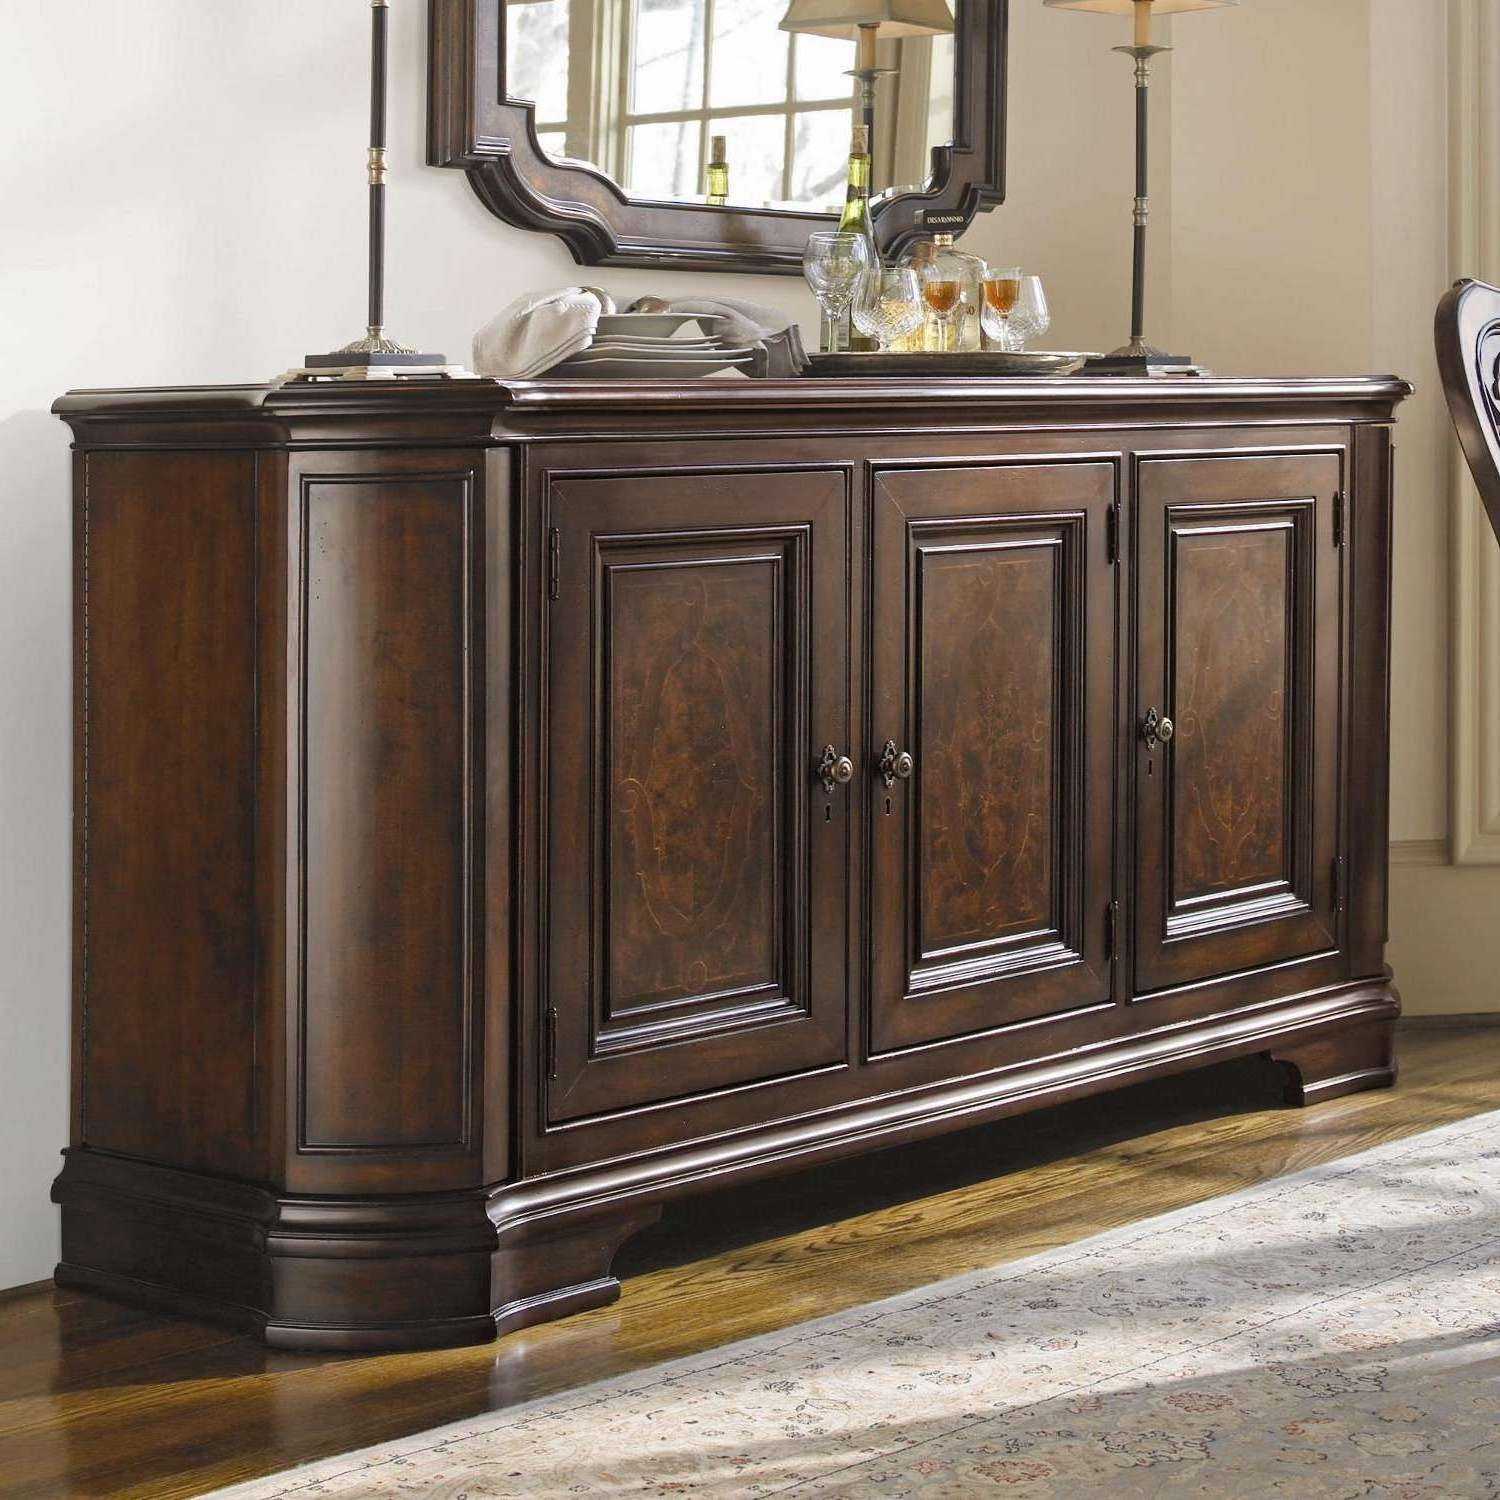 The Best Buffet Sideboards With Sideboards Decors (View 16 of 20)